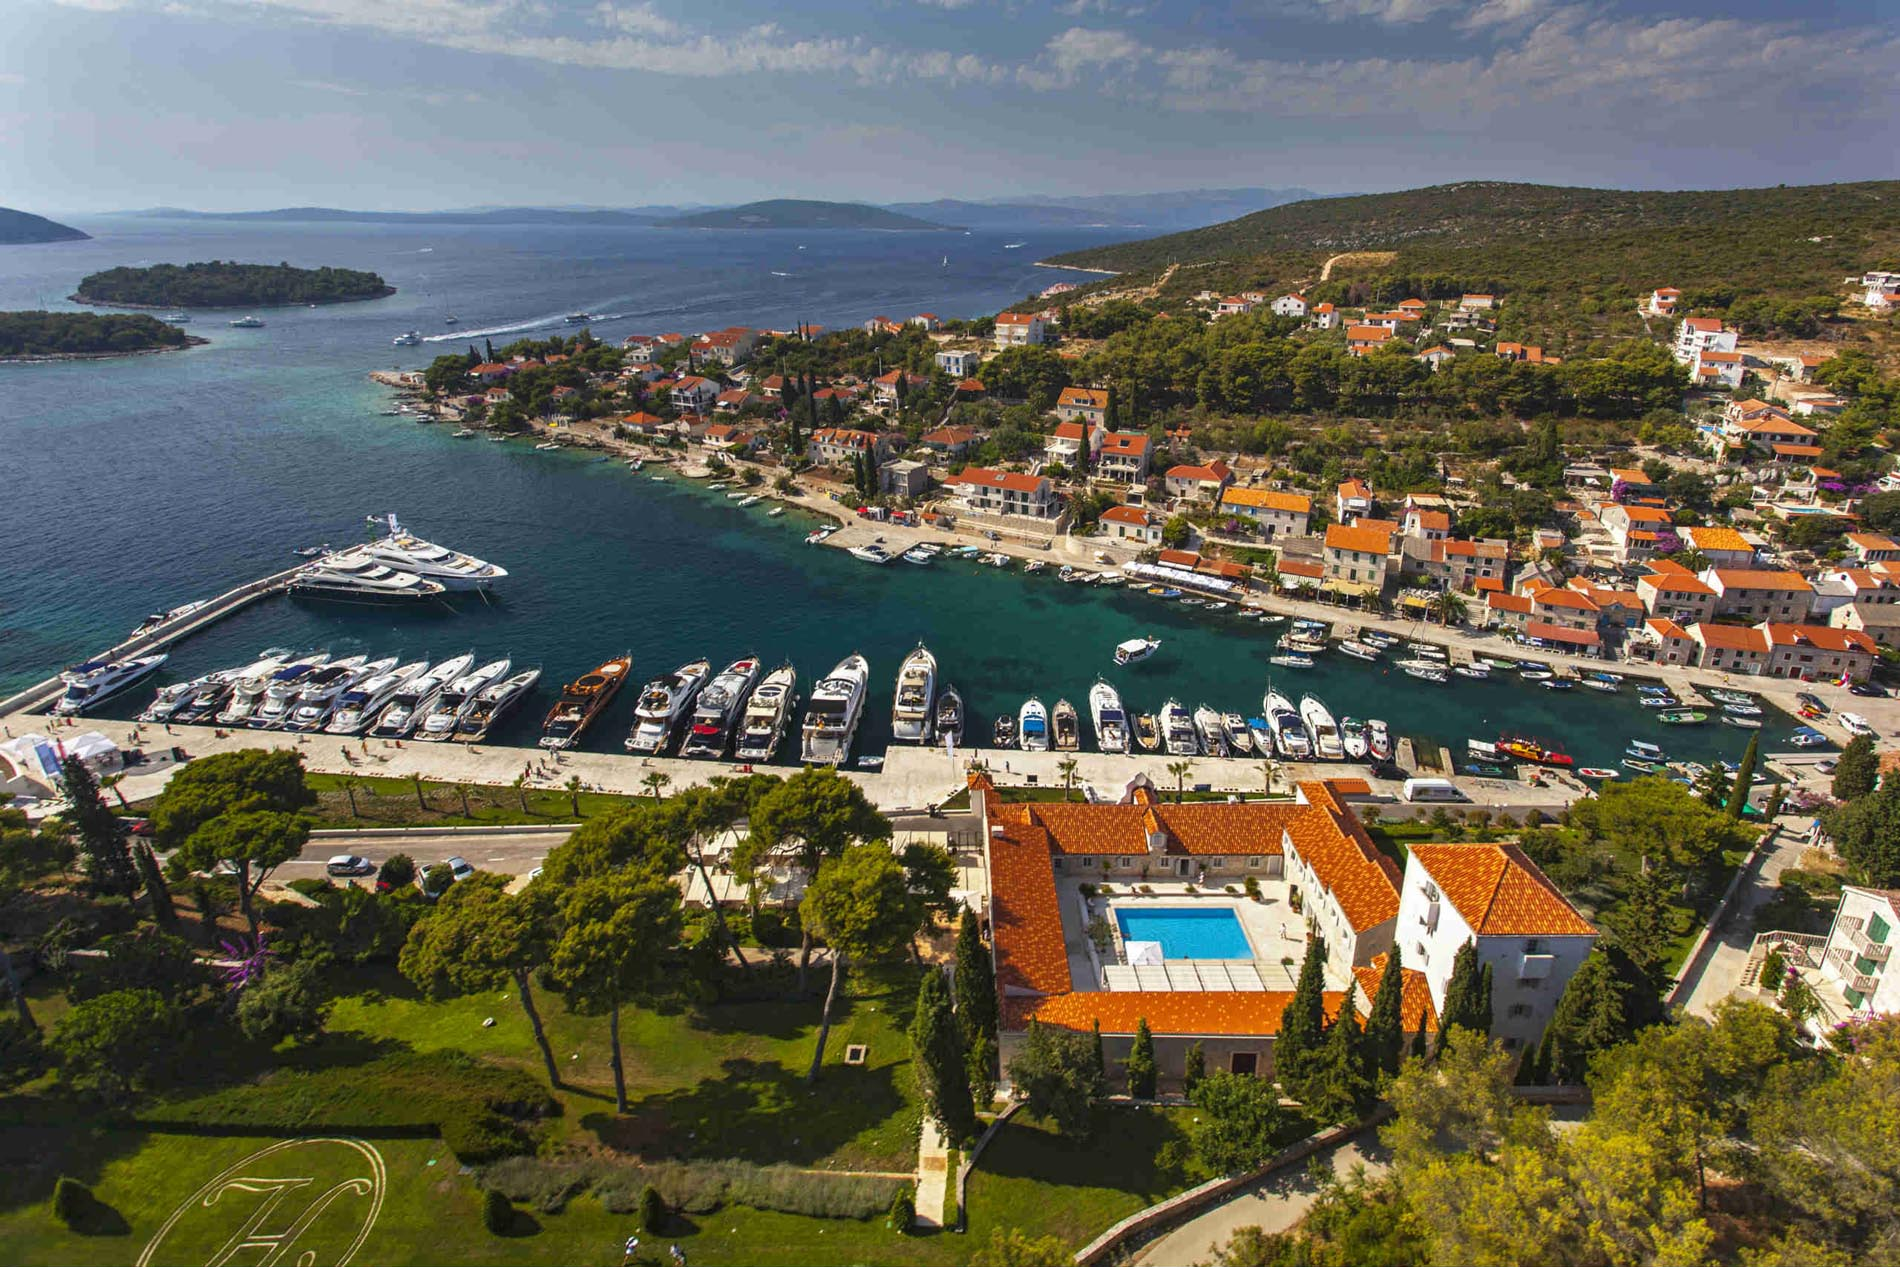 Croatia Sailing Destinations - Šolta